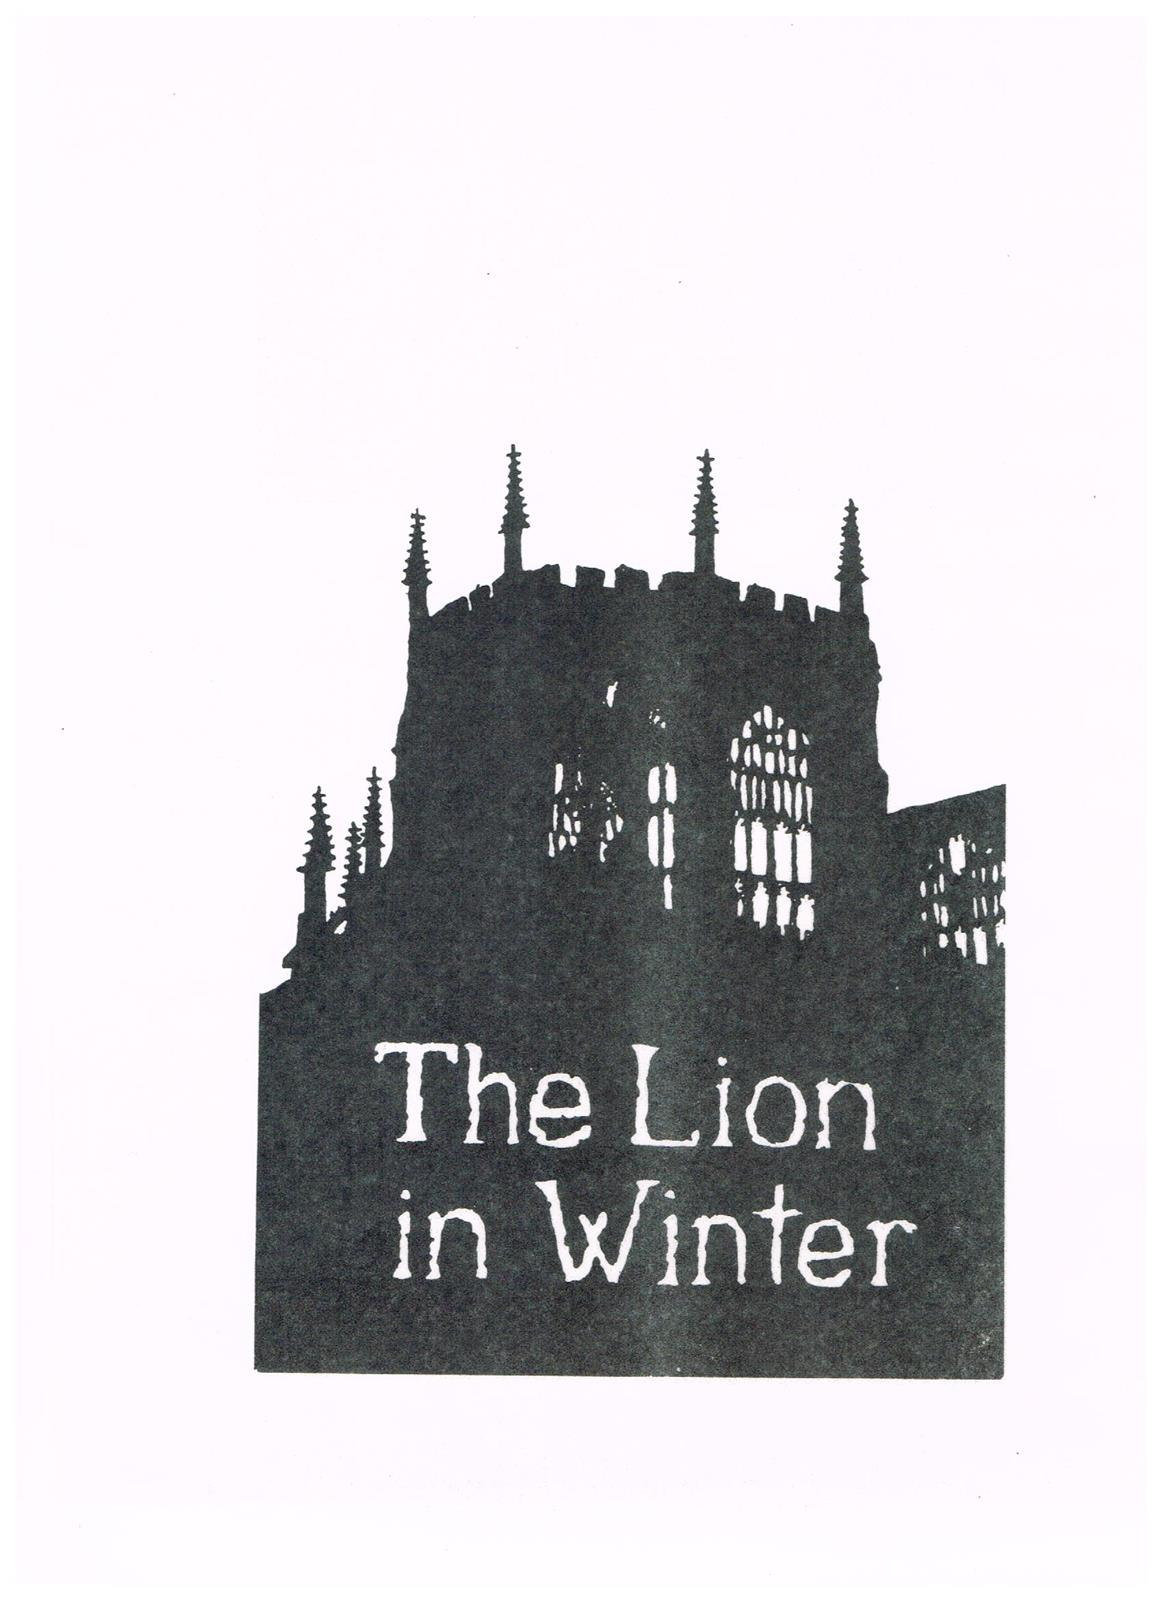 Phoenix Theatre Lion in Winter Nov. 1970 001